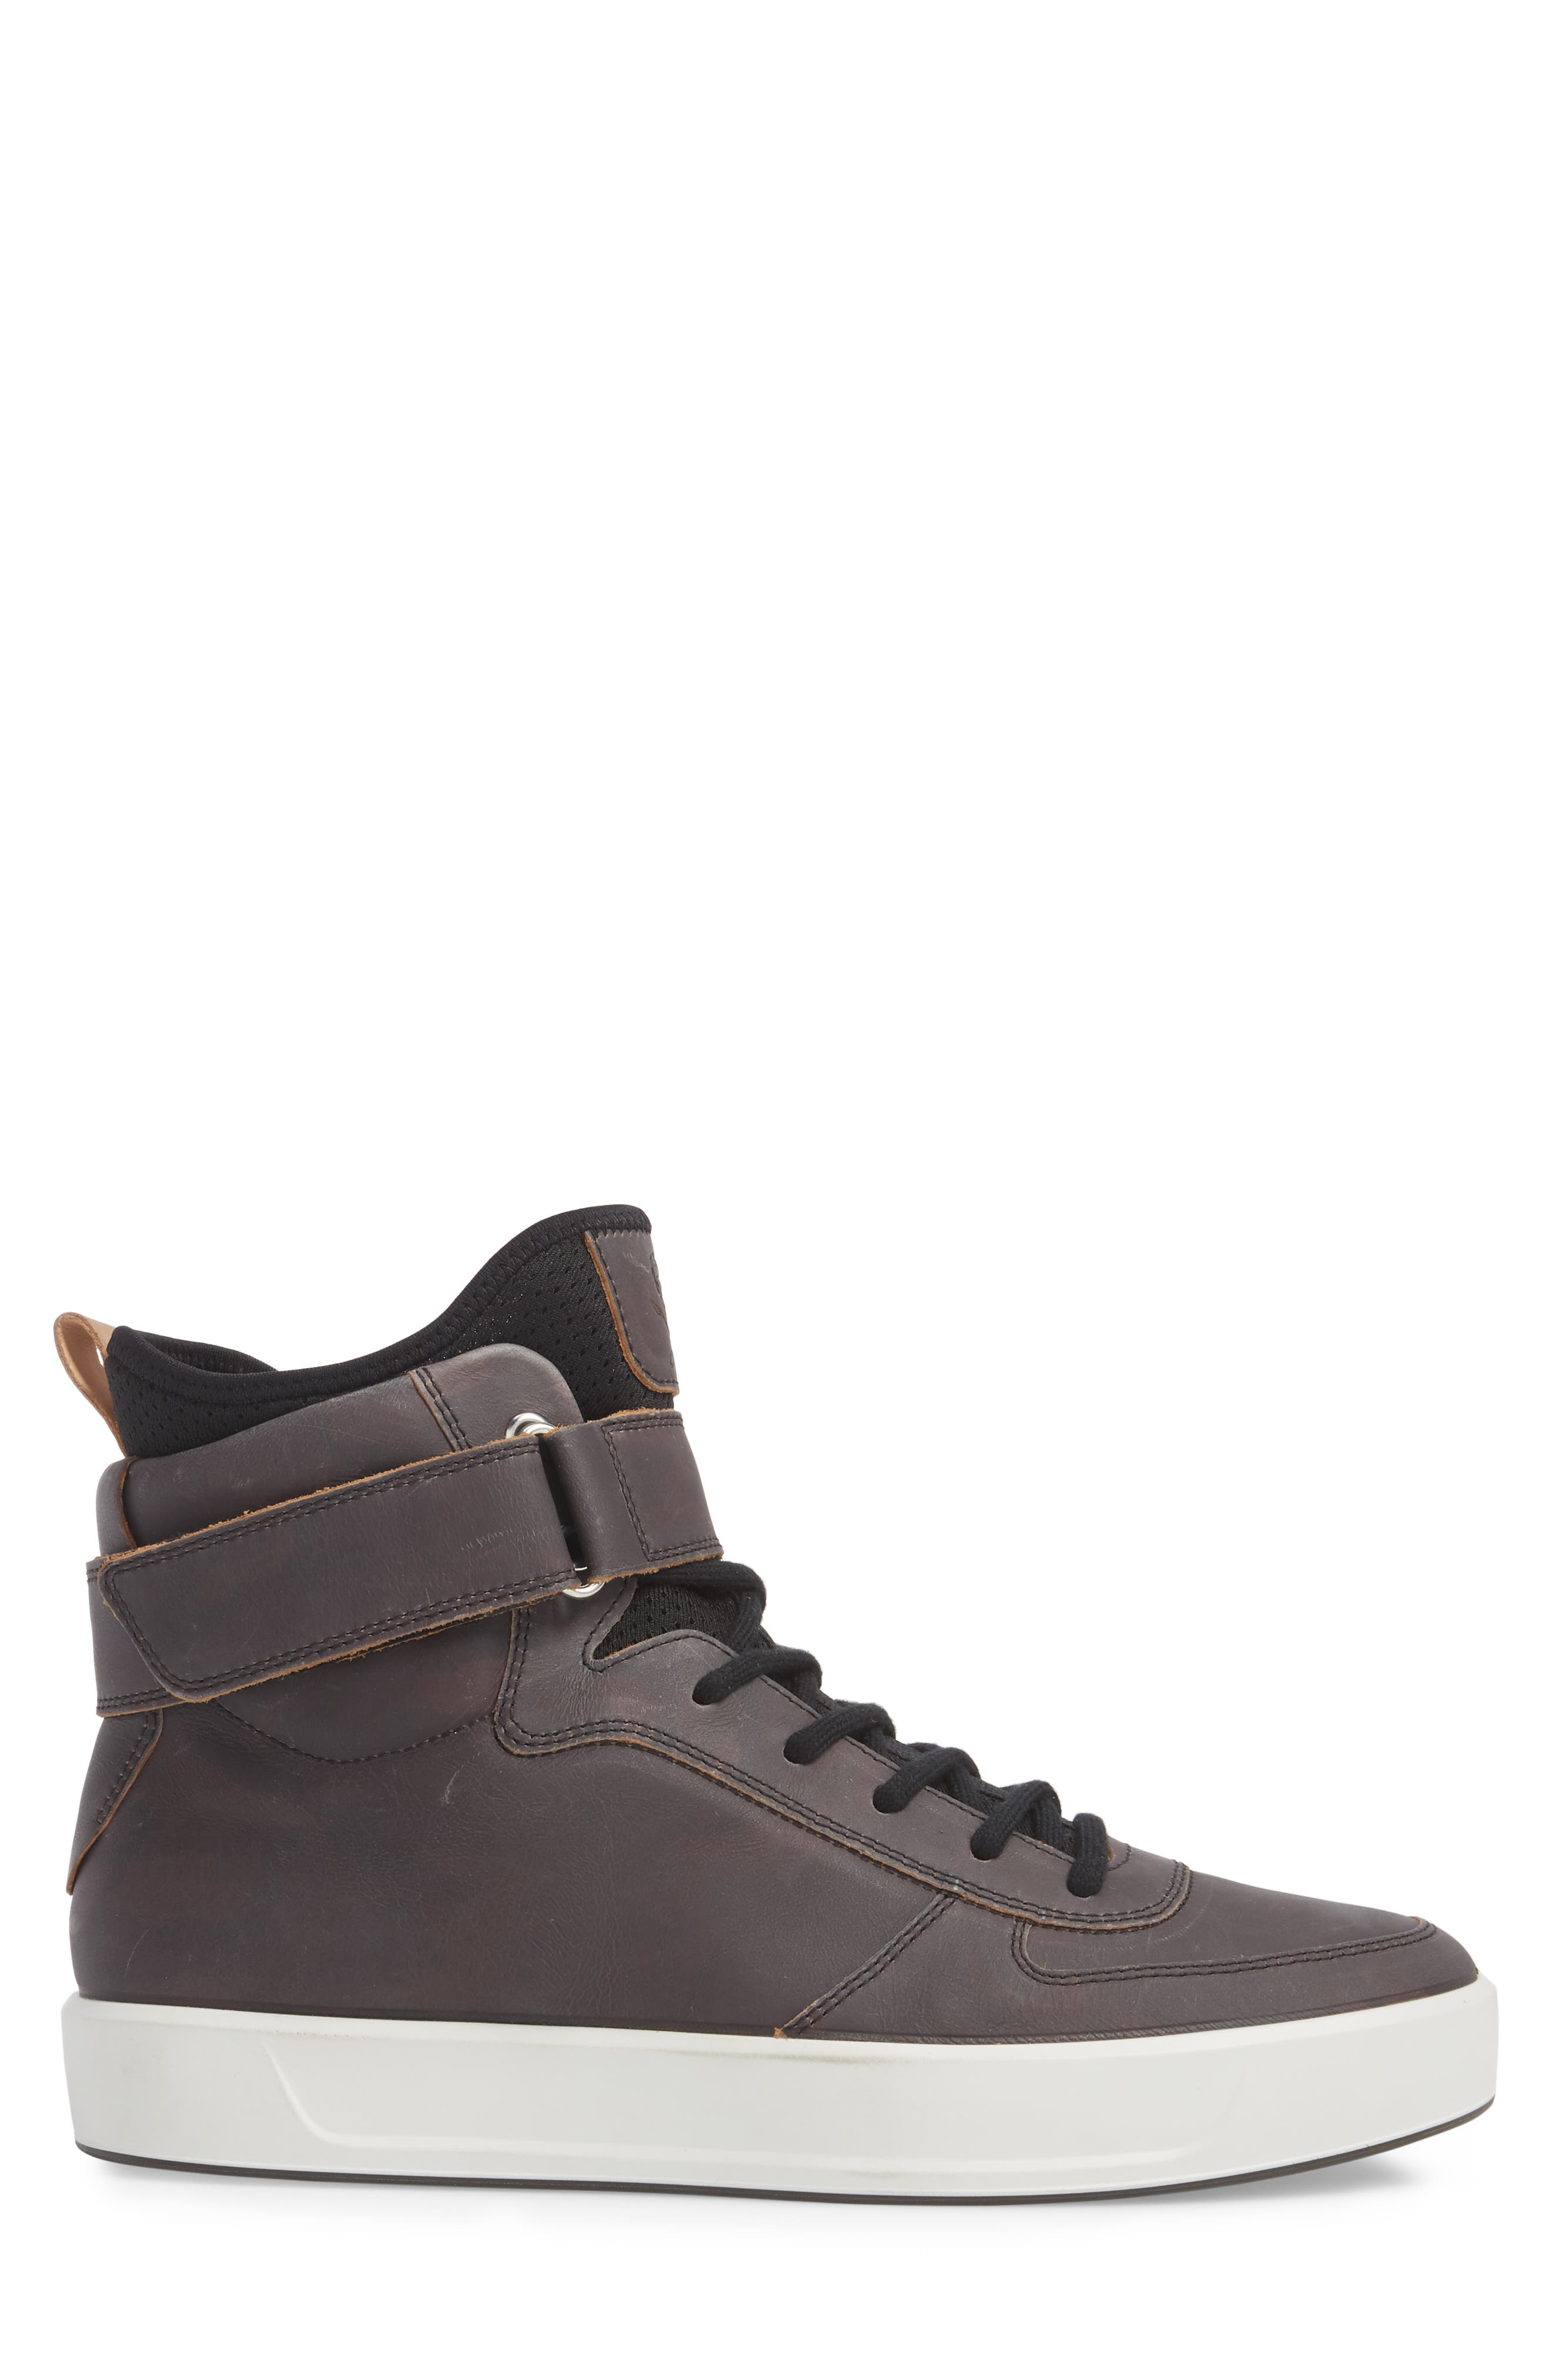 Soft 8 Color Changing Sneaker Boot,                             Alternate thumbnail 3, color,                             Black/ Camouflage Leather